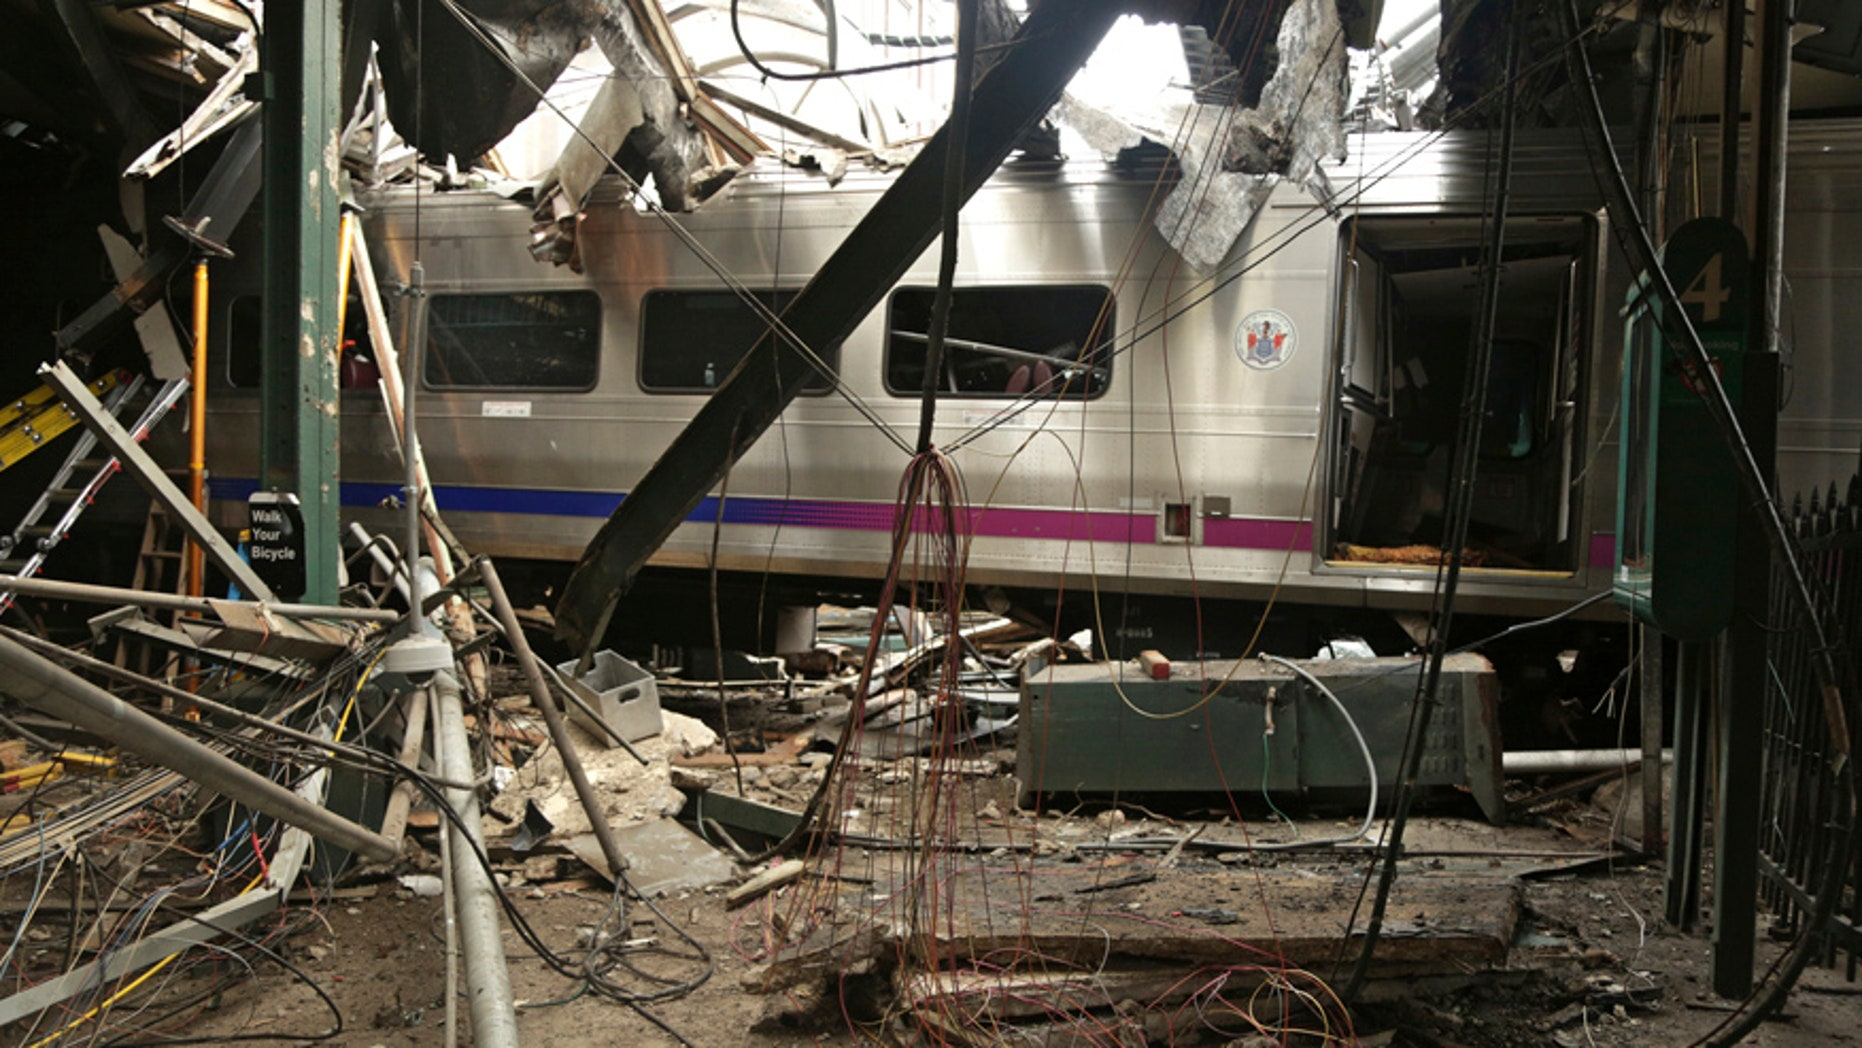 Oct. 1, 2016: Damage done to the Hoboken Terminal in Hoboken, N.J., after a commuter train crash.